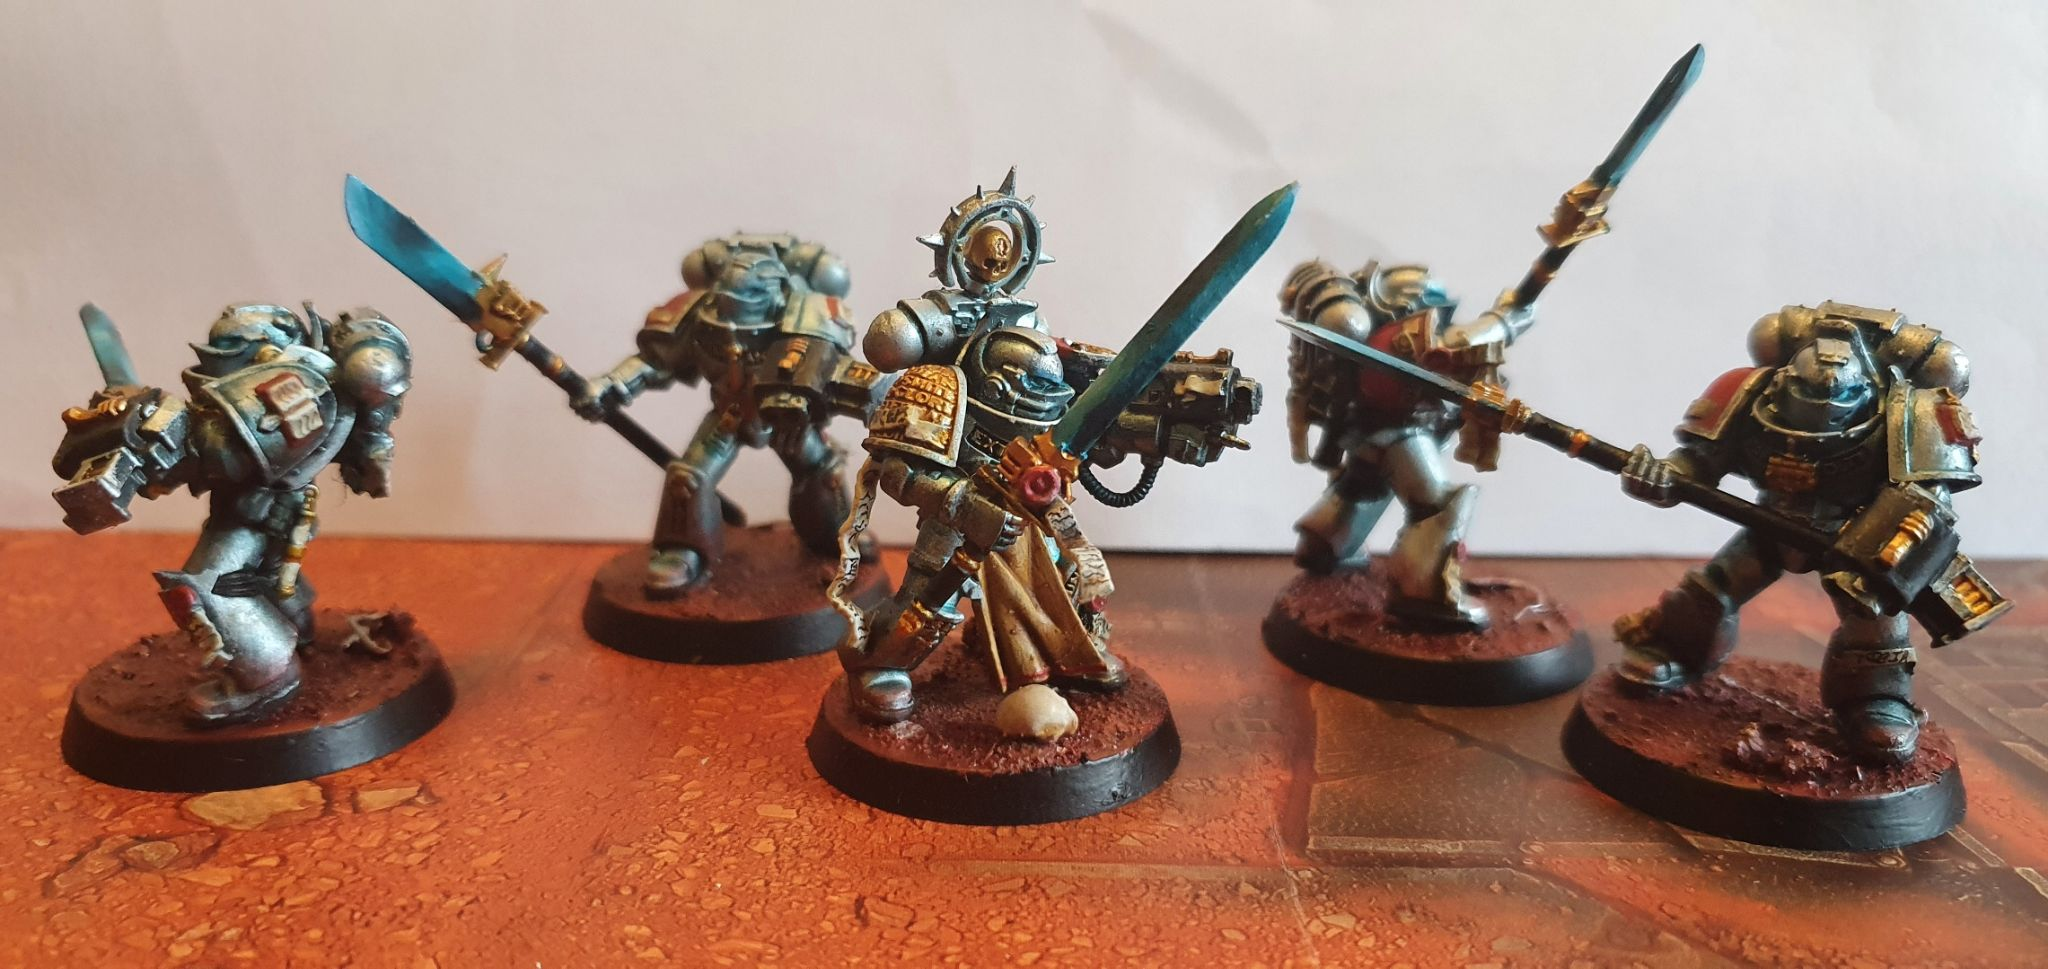 Silver to deep turquose armour, accented with gold.  The Force weapons are deep turquoise to bright blue.  They are on martian sand effect bases, some with light rocks and wire.